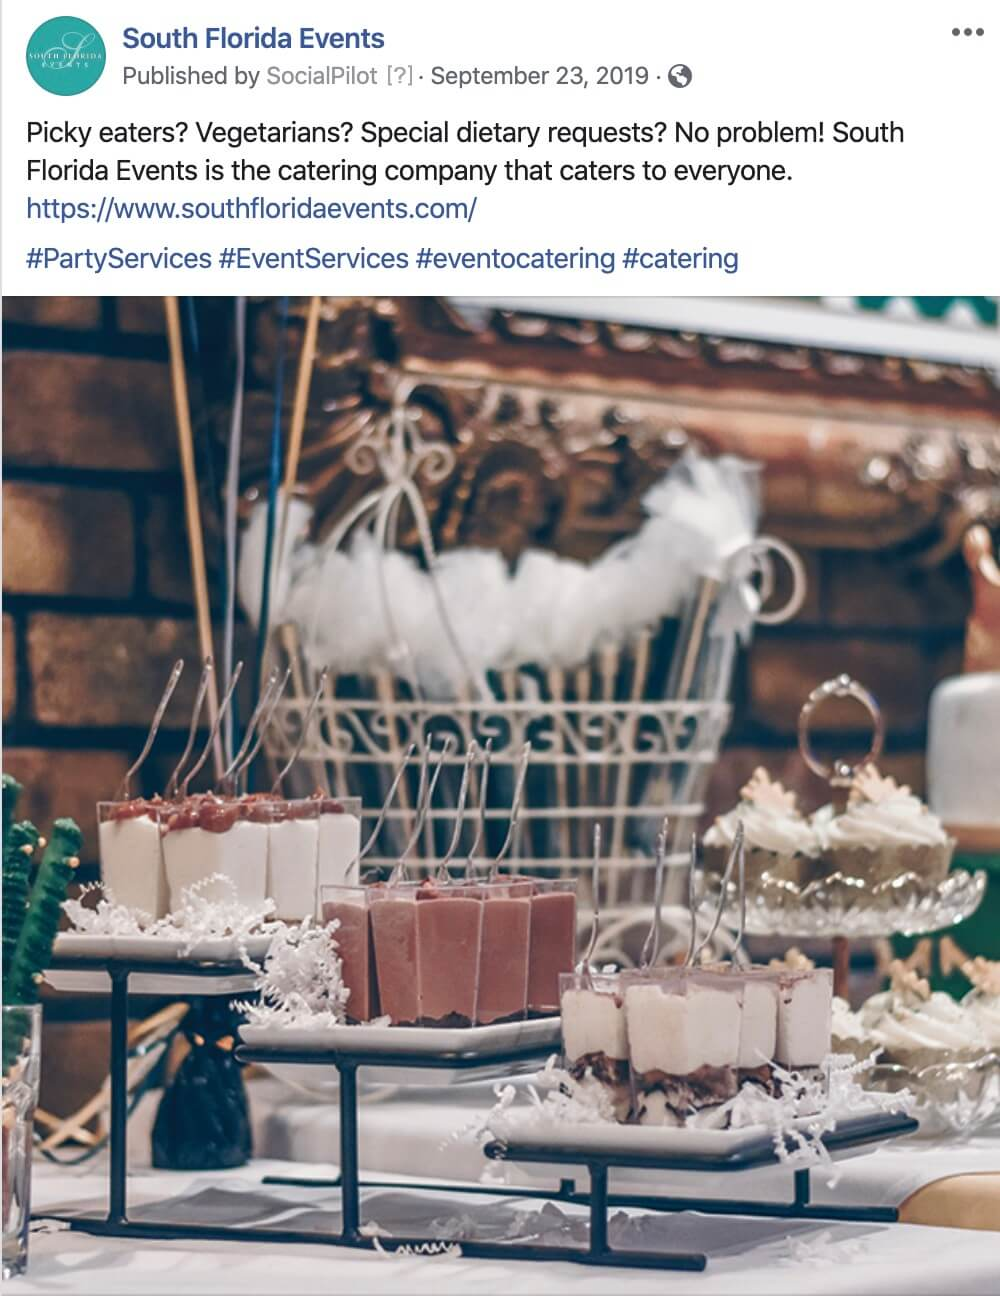 Event Catering and Corporate Catering Social Media Postings